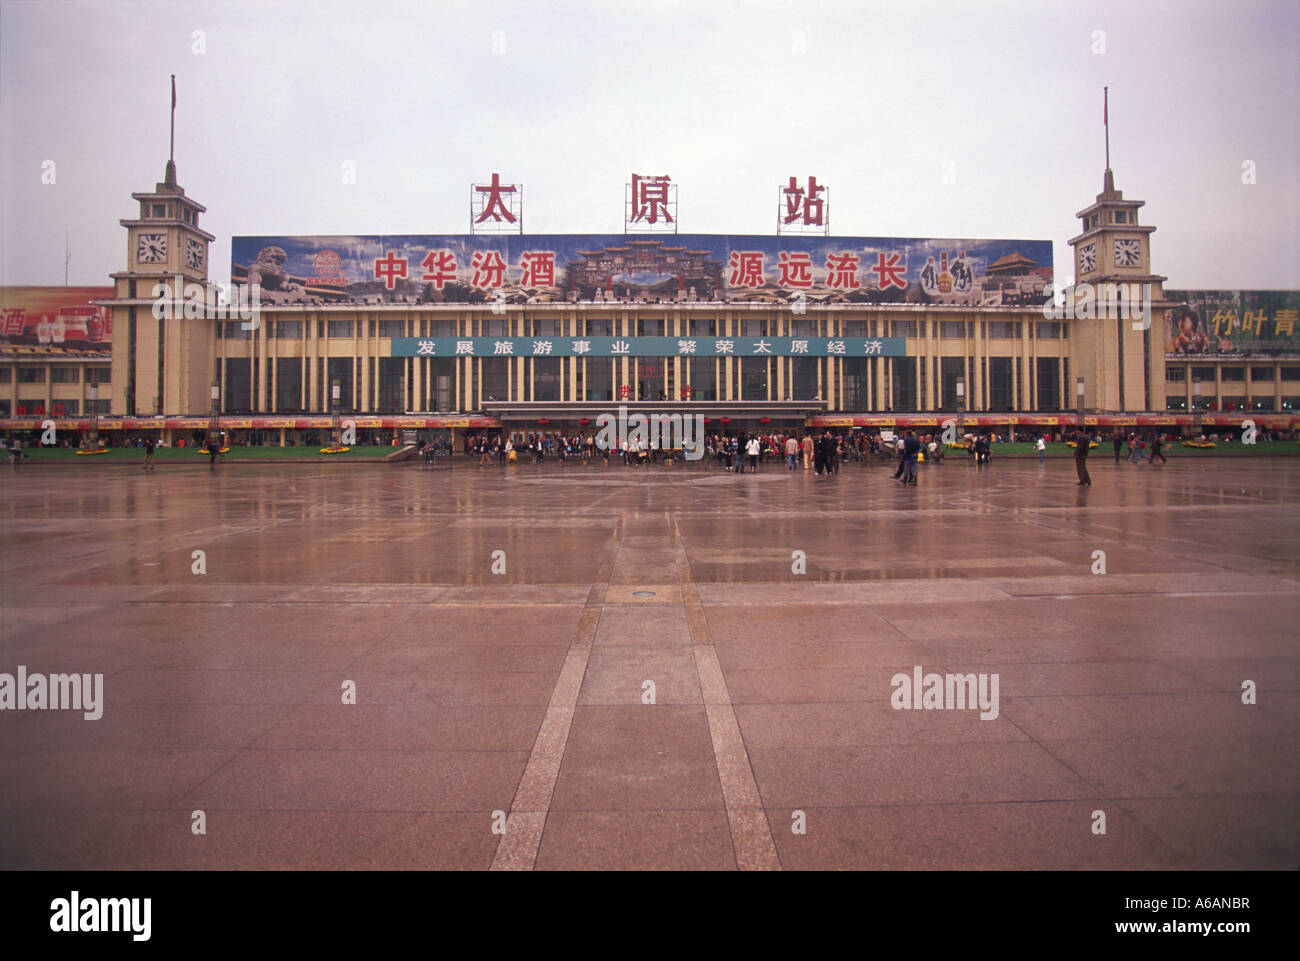 China, Shanxi, Taiyuan, Huoche zhan, grand Soviet-style facade of railway station Stock Photo